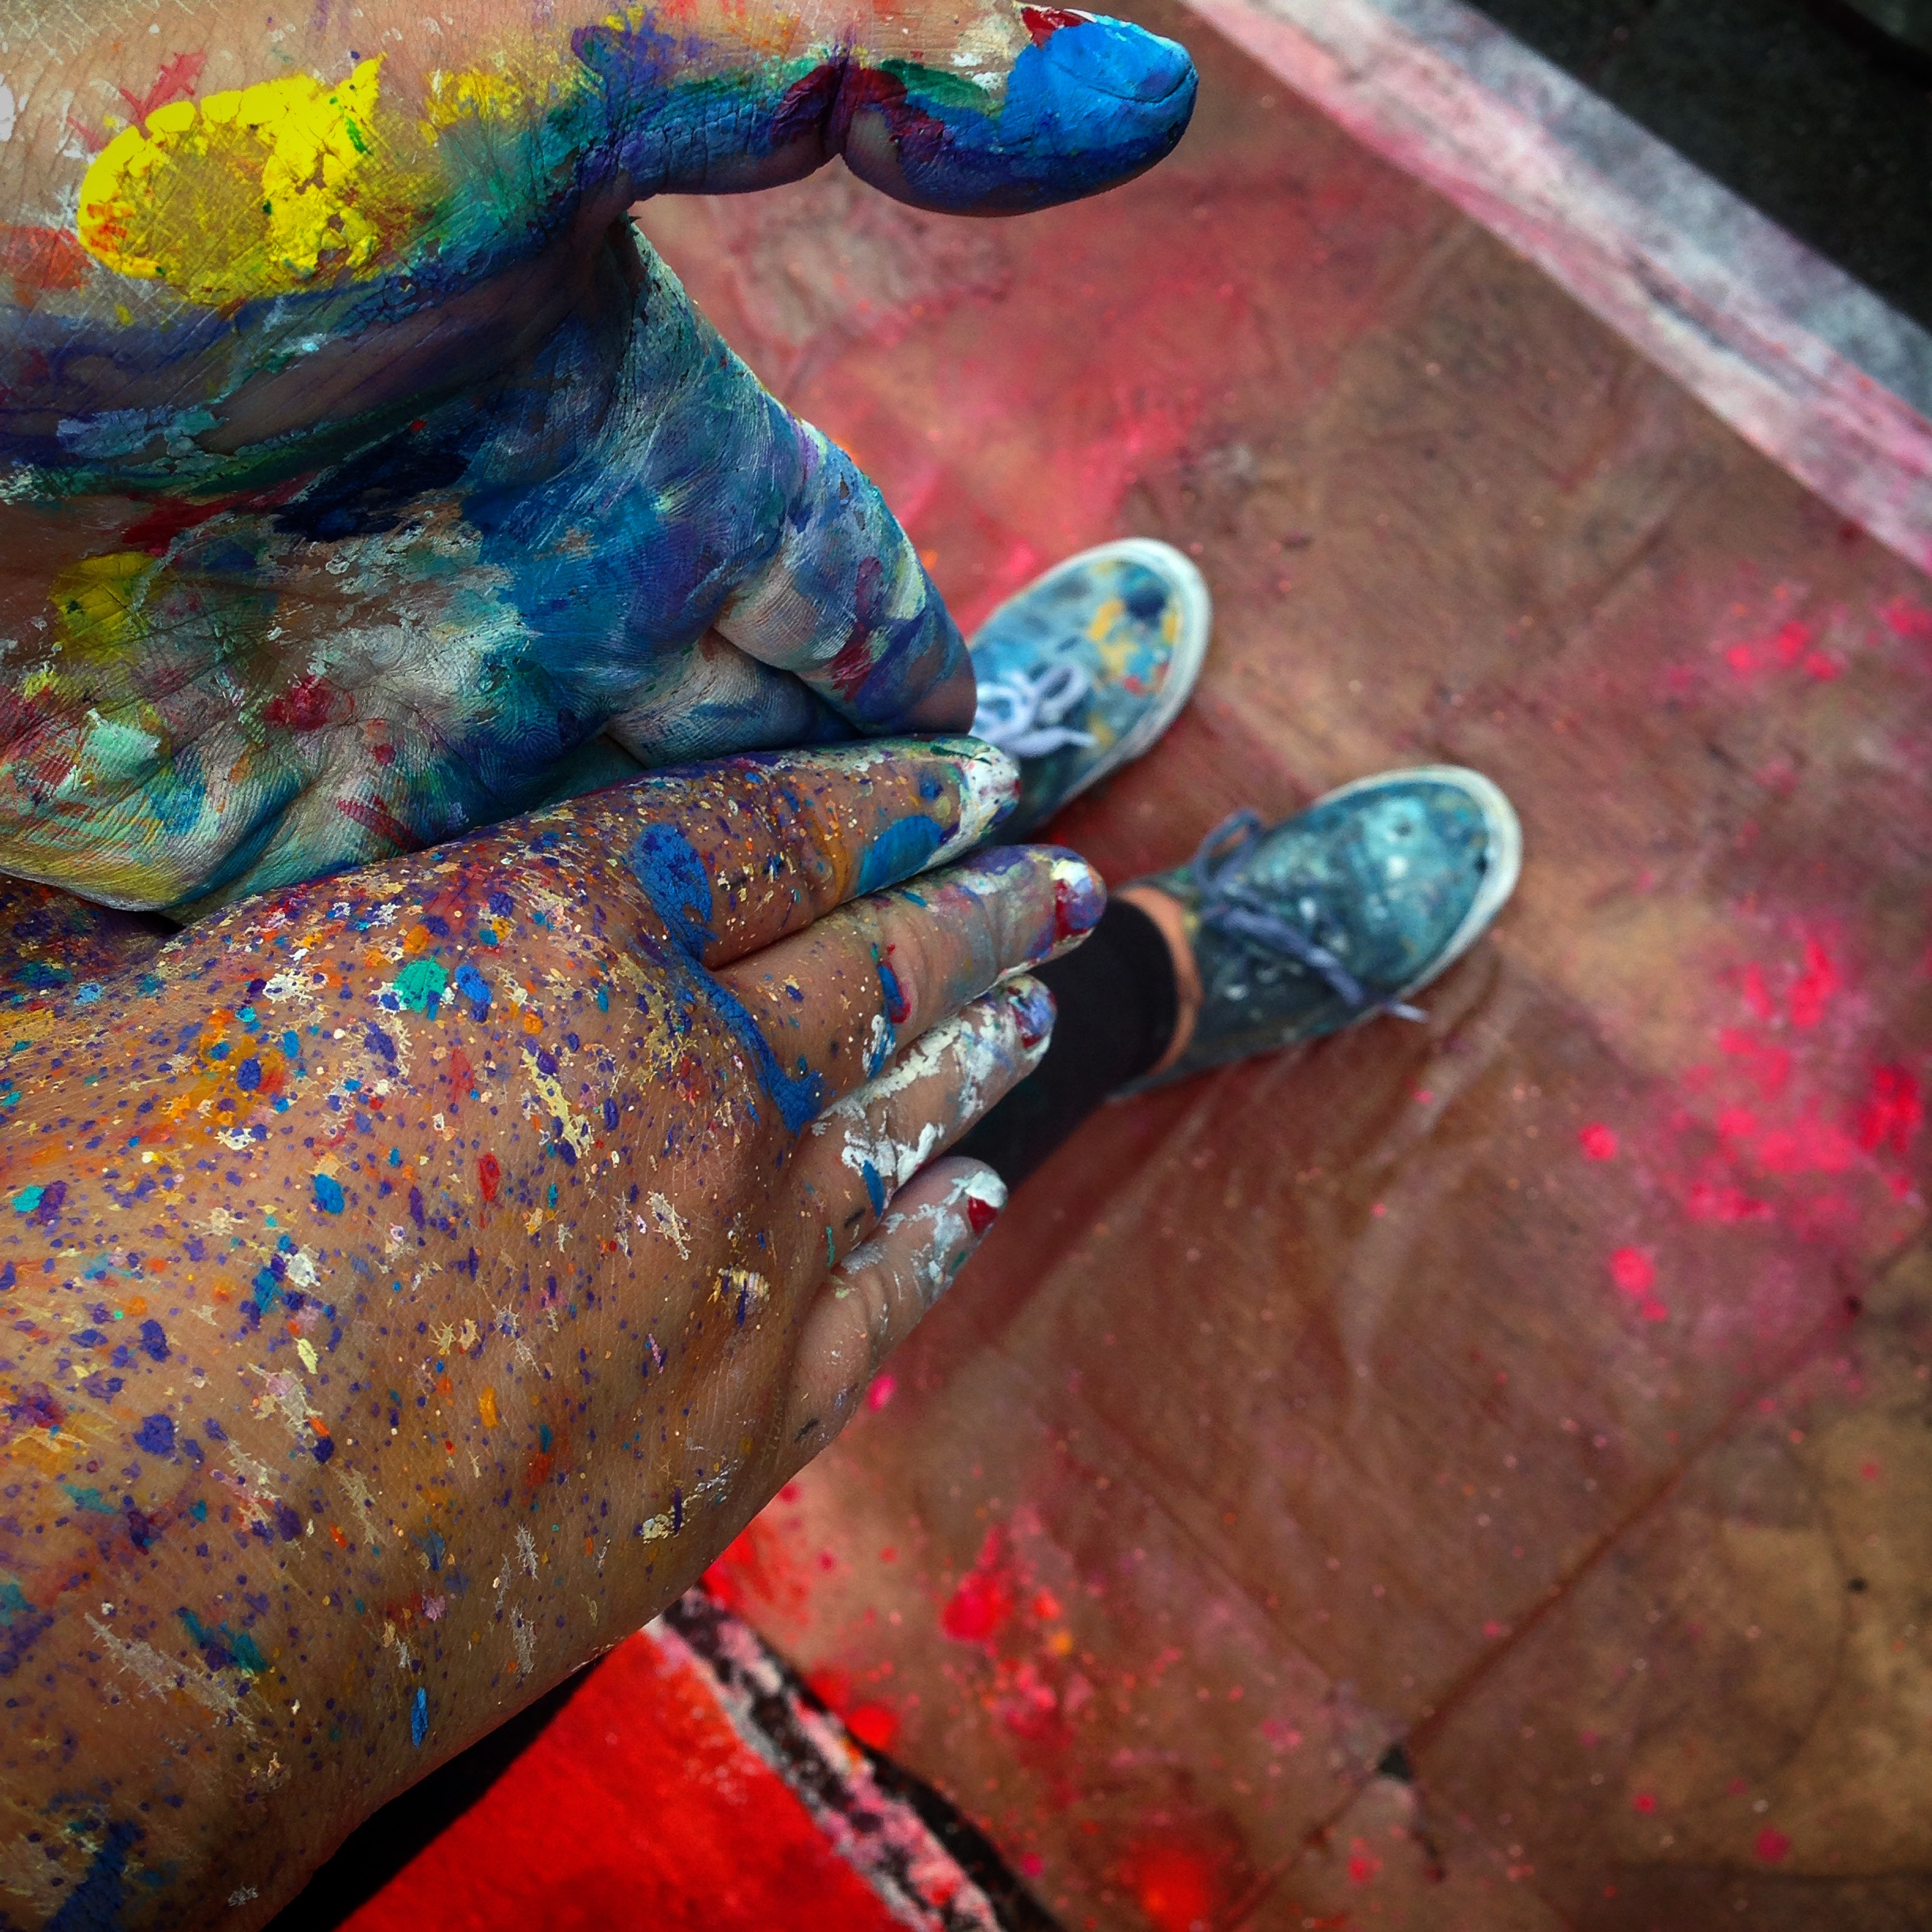 Pau at work covered in color. Image Courtesy of the artist